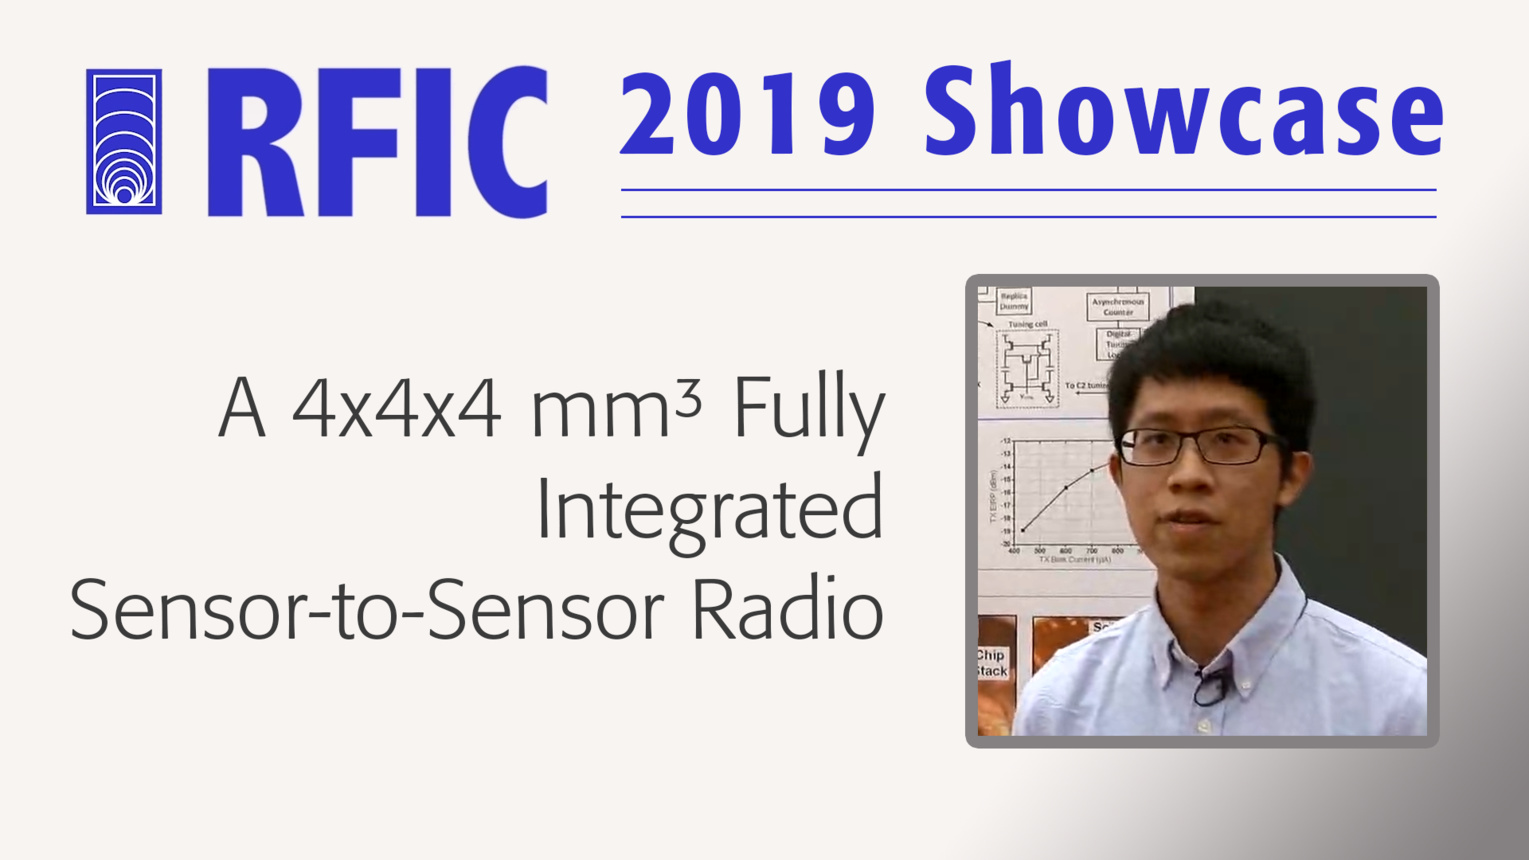 A 4x4x4 mm³ Fully Integrated Sensor-to-Sensor Radio - Li-Xuan Chuo - RFIC 2019 Showcase